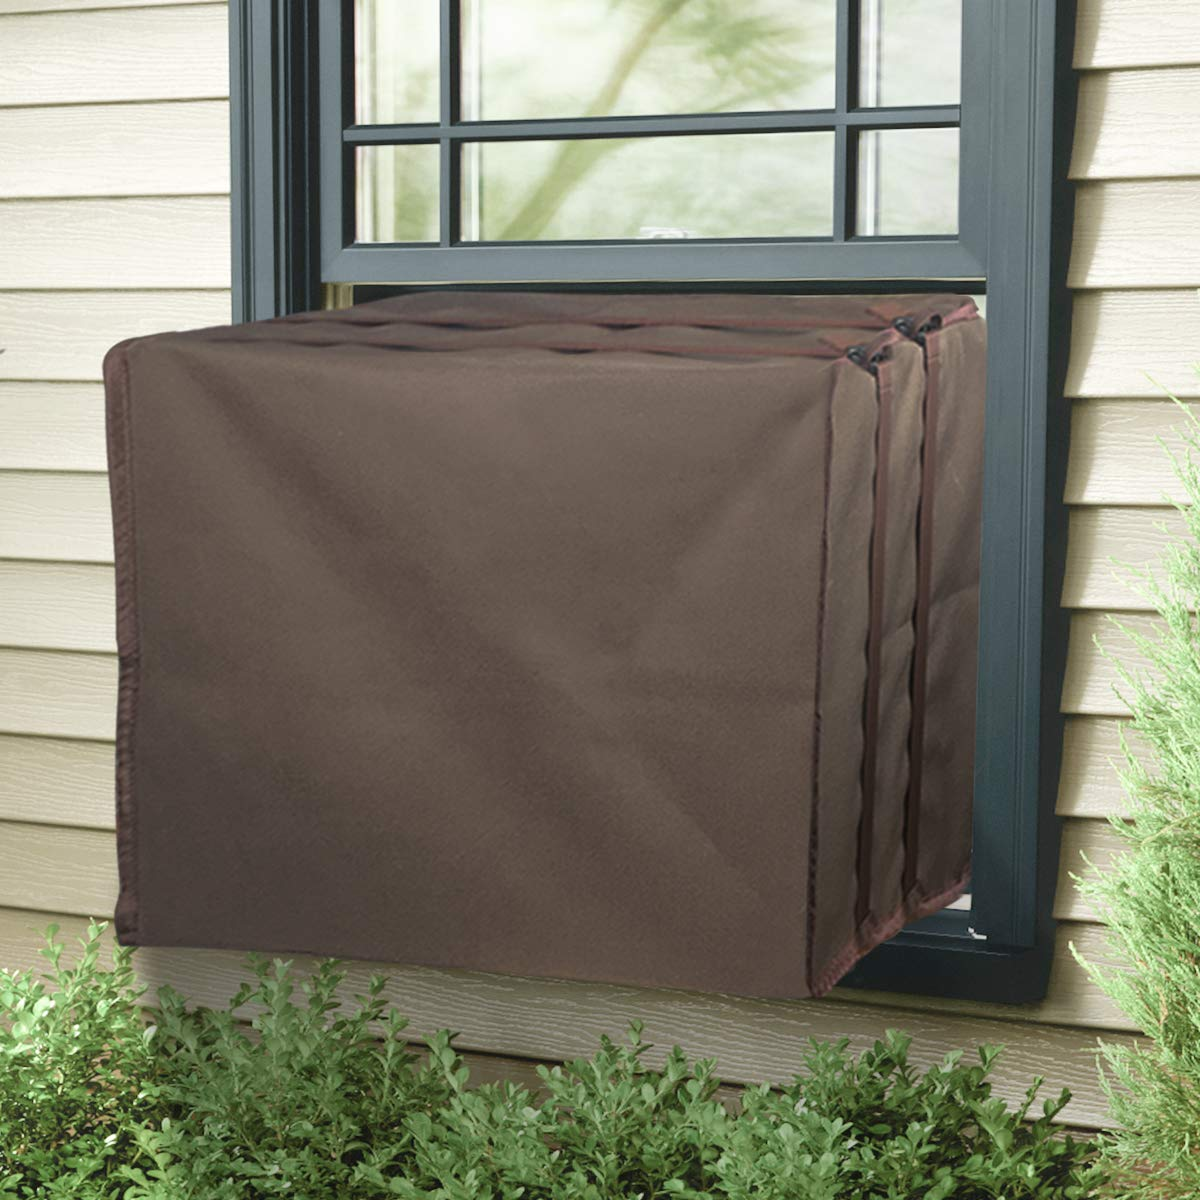 Air Jade Outdoor Cover for Window Air Conditioner A/C Unit Defender Winter Outside Covers Brown (21''W x 15''H x 16''D)